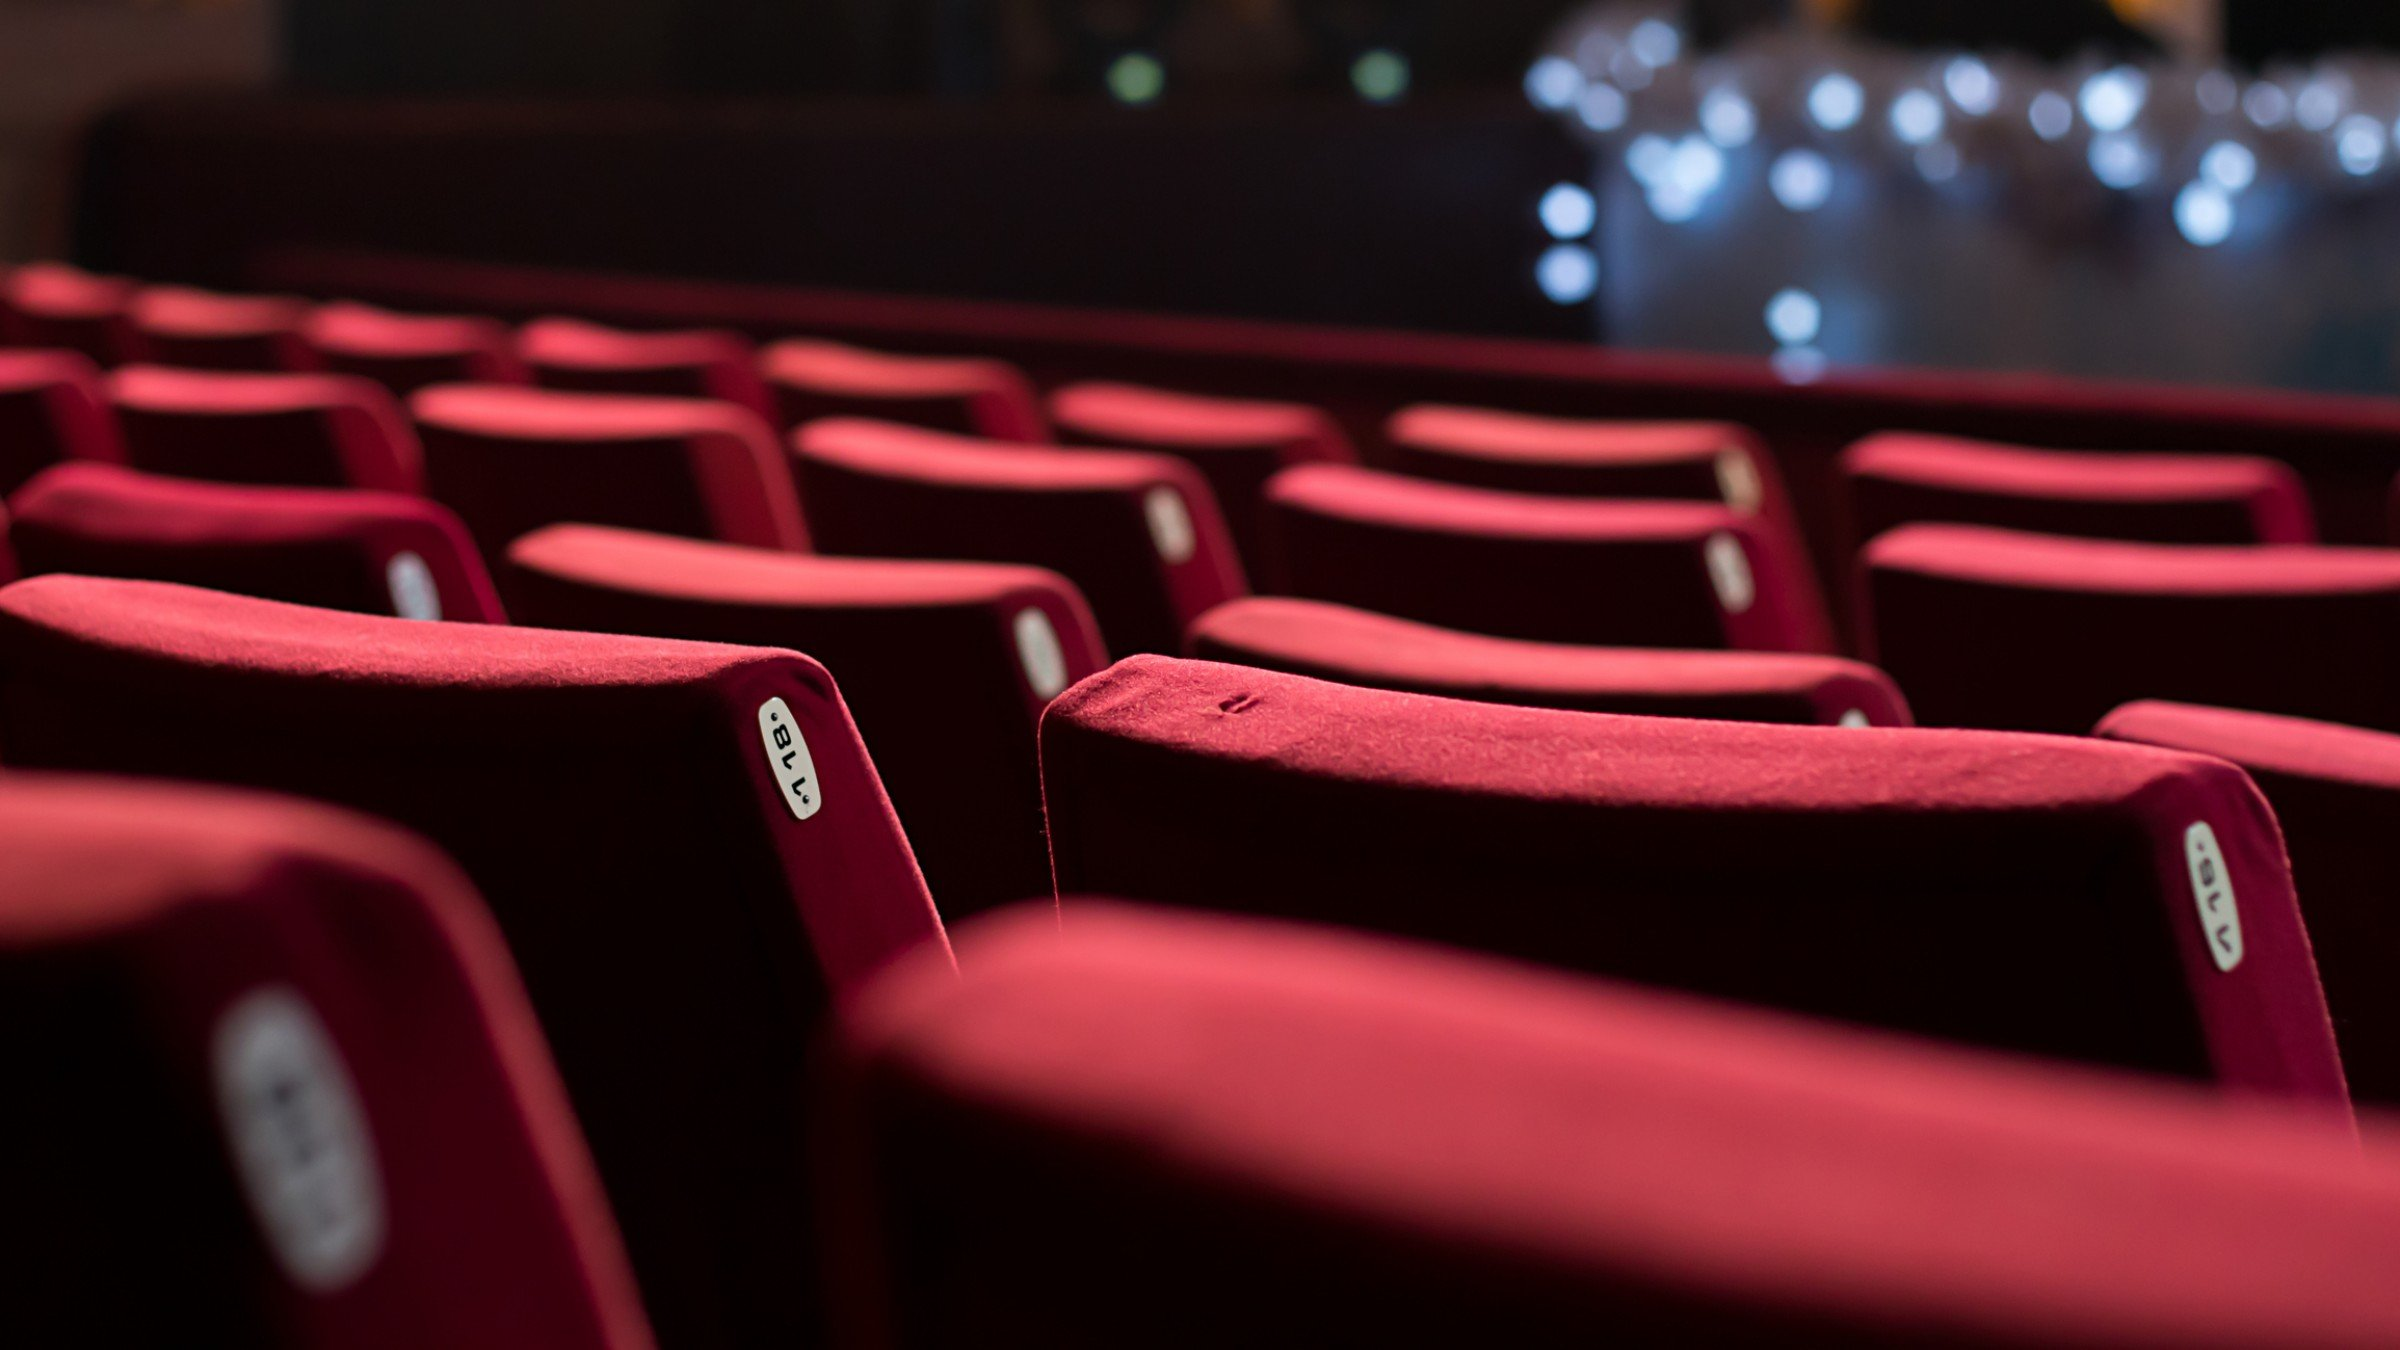 You Can Now See Unlimited Movies in Theaters for $10 a Month, Thanks to an Ex-Netflix Exec